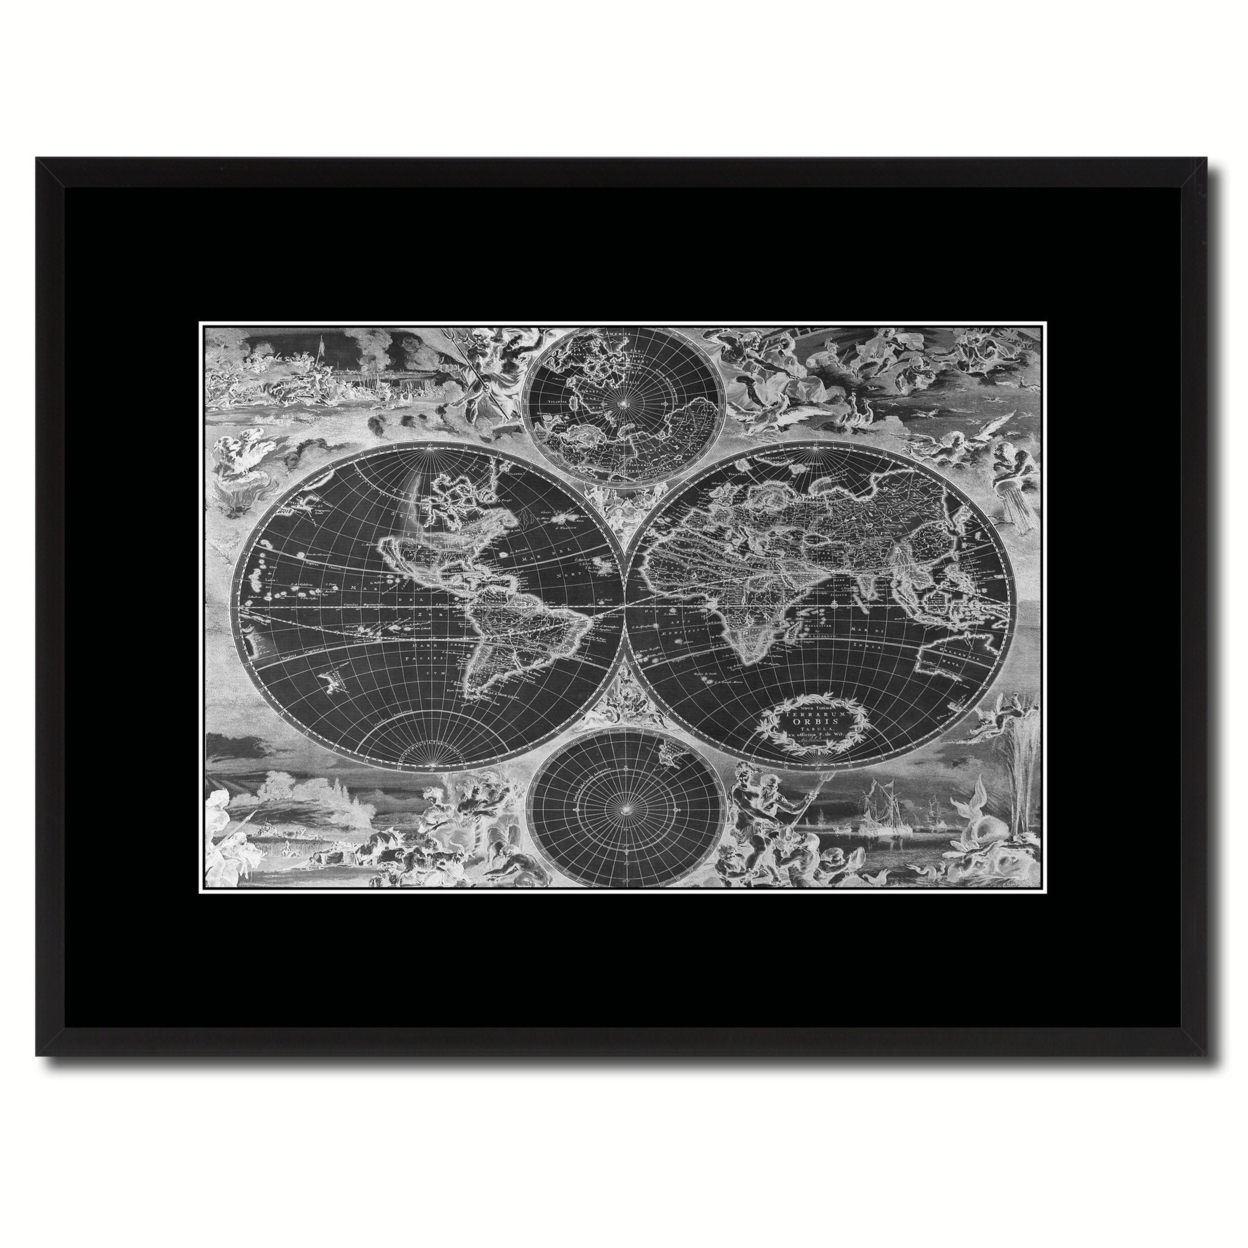 "World Hemispheres Vintage Monochrome Map Canvas Print, Gifts Picture Frames Home Decor Wall Art – 16"" x 21"""